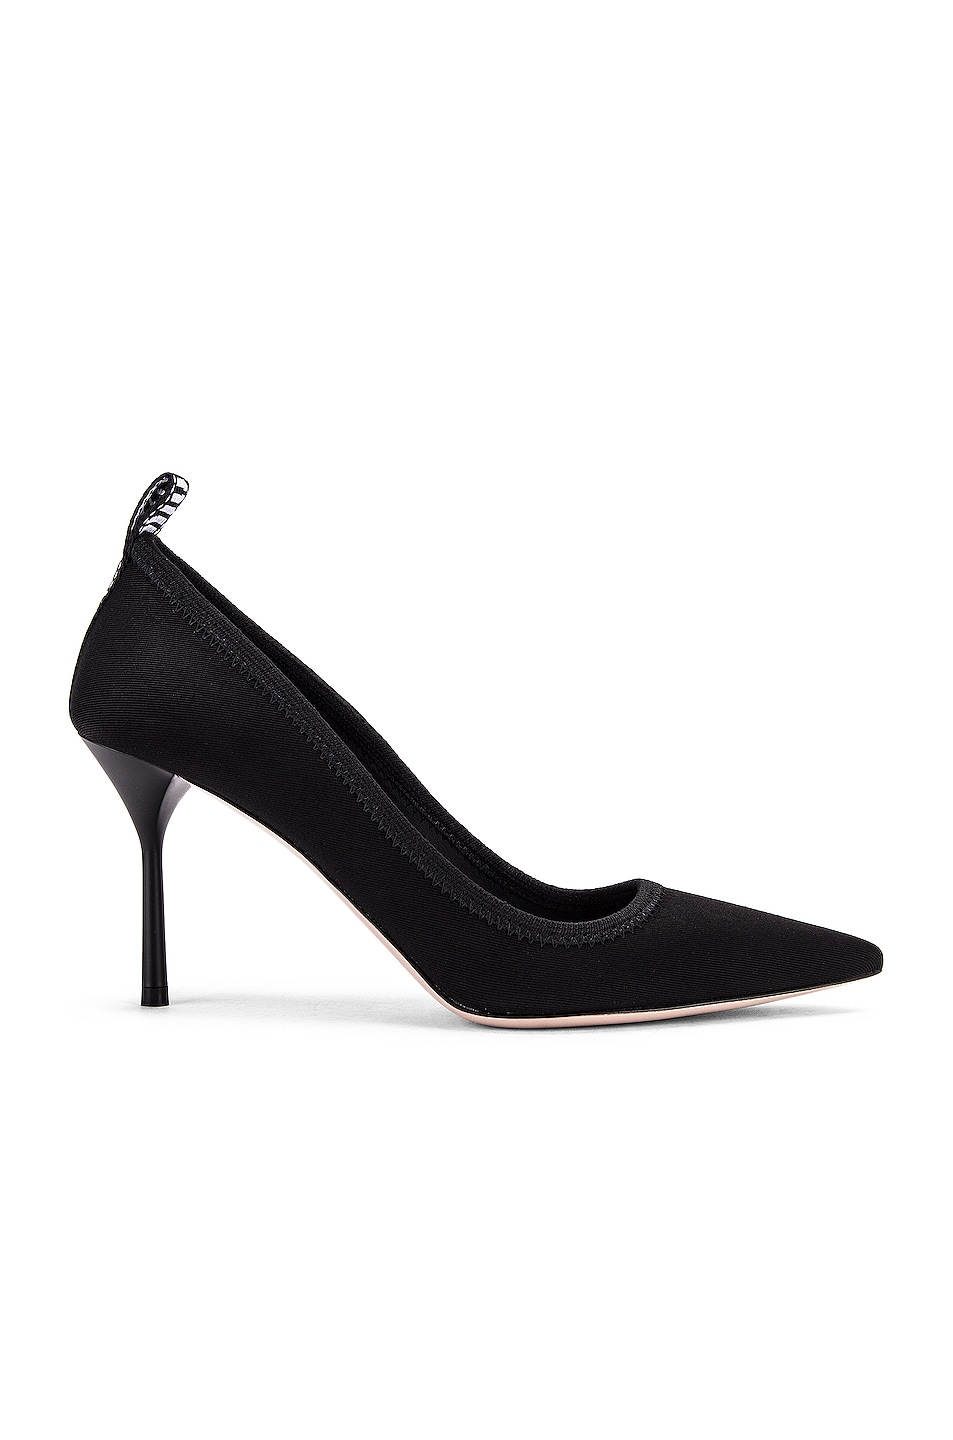 Image 1 of Miu Miu Pointed Toe Heels in Black